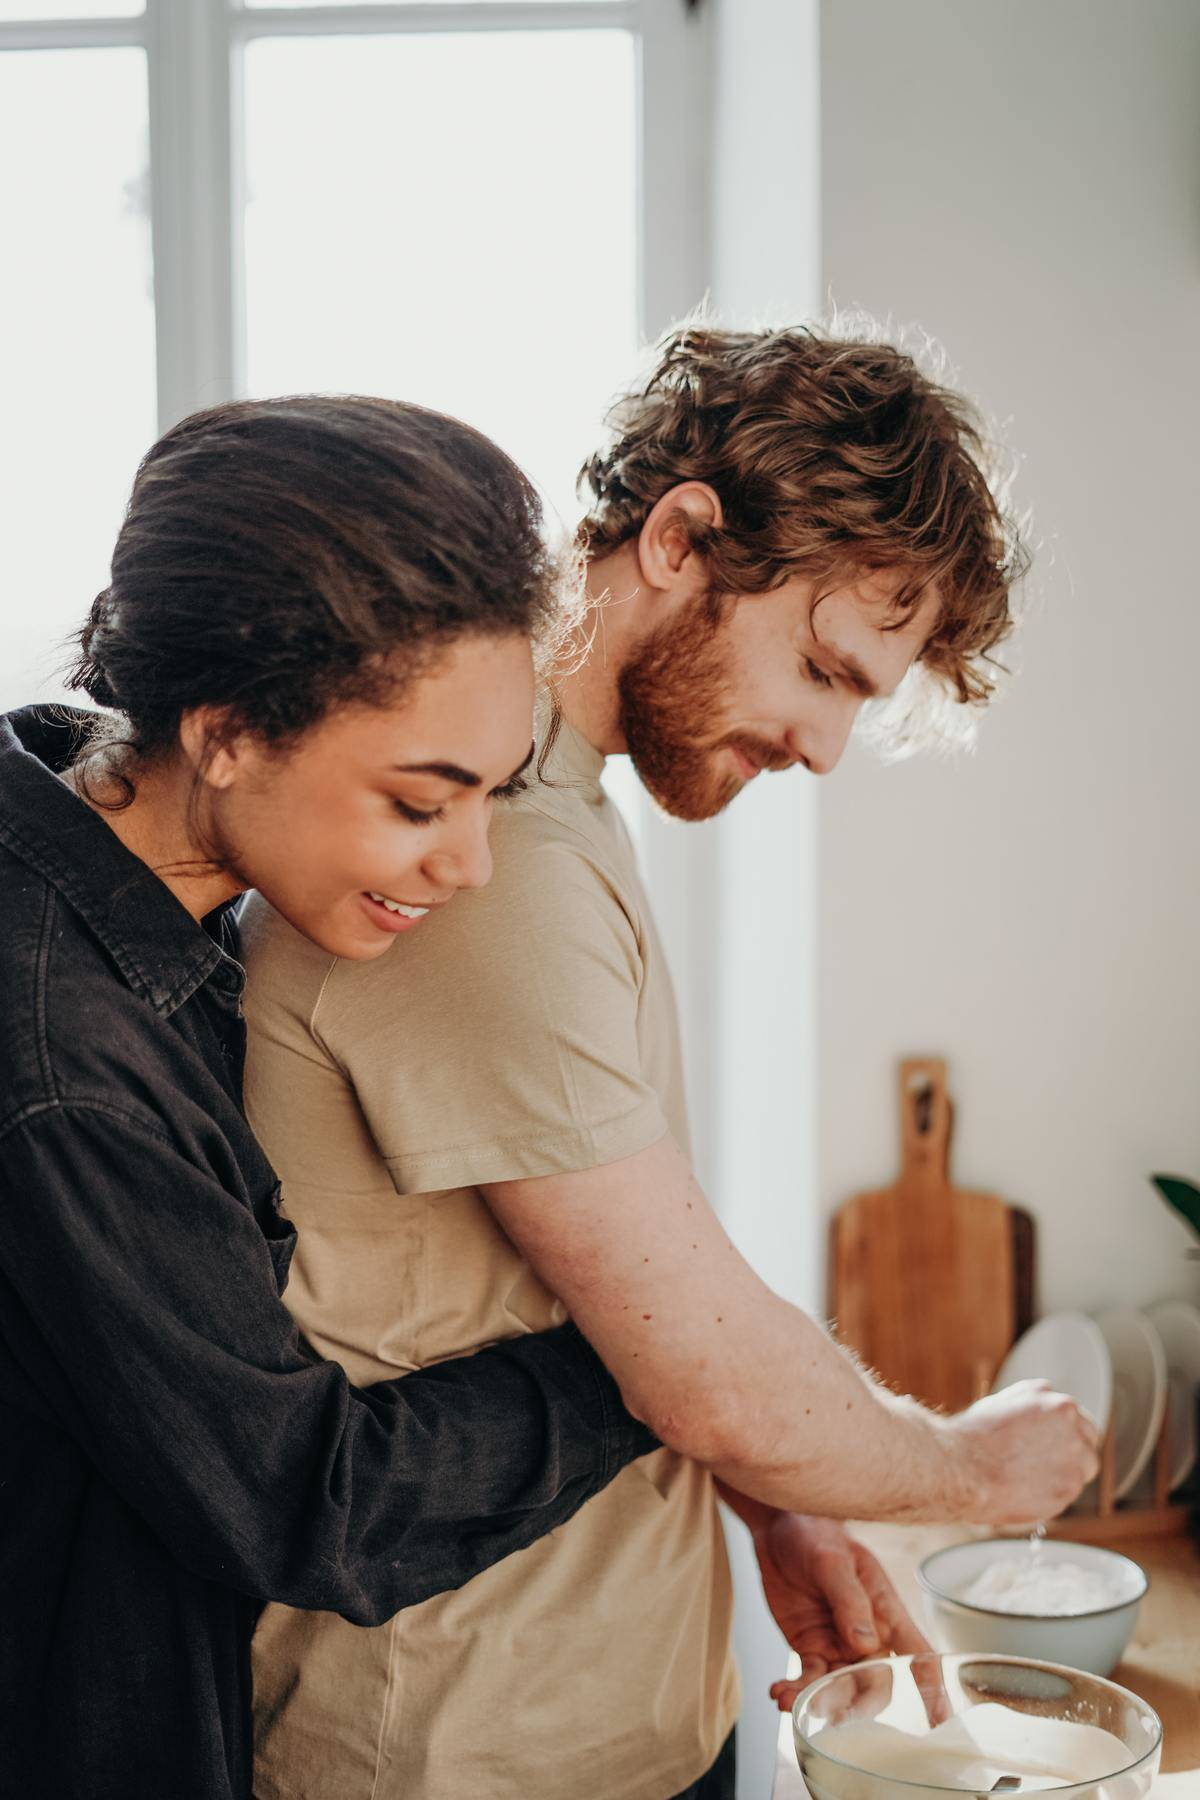 Young couple in kitchen, woman hugs man from behind